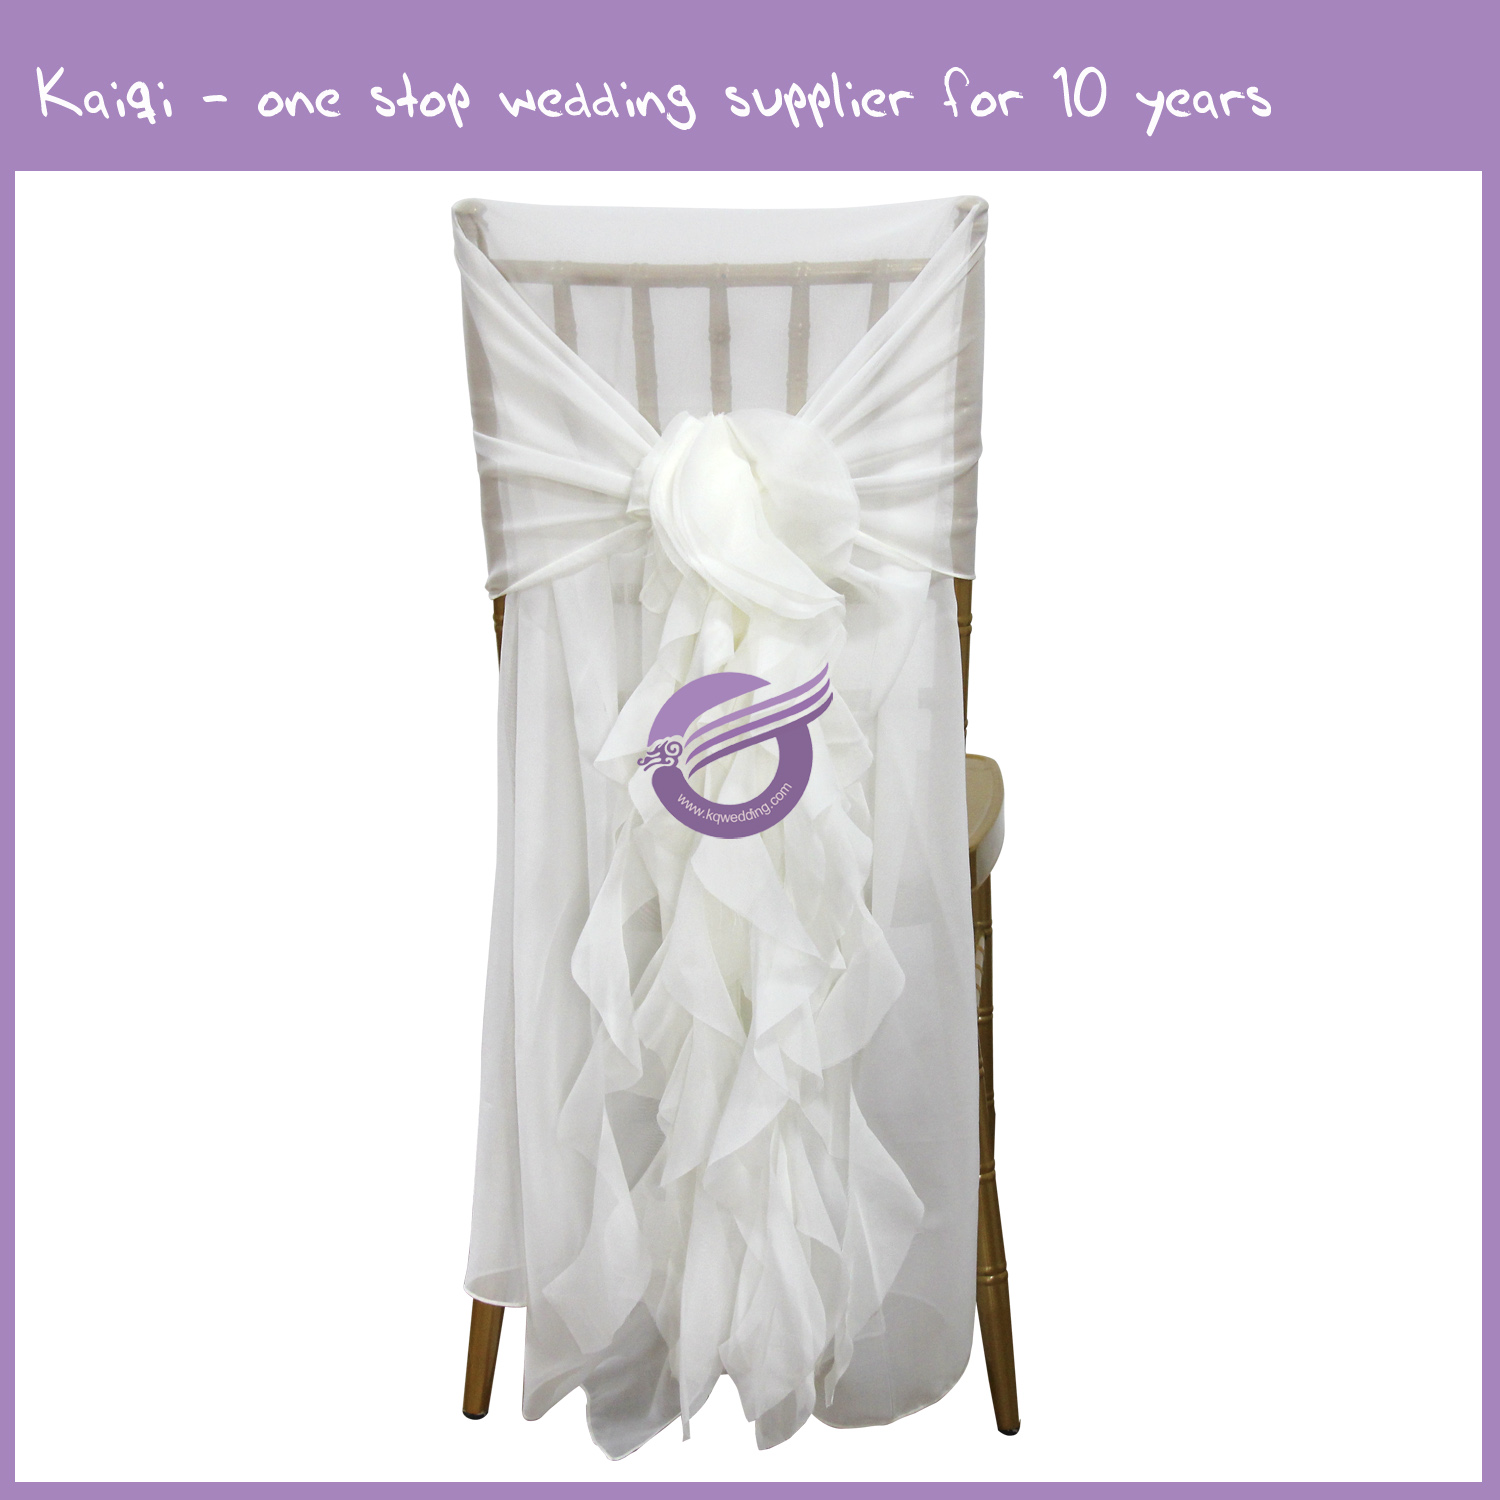 elegant chair covers and wedding decor used salon chairs for sale ivory bridal chiffon sash wrap